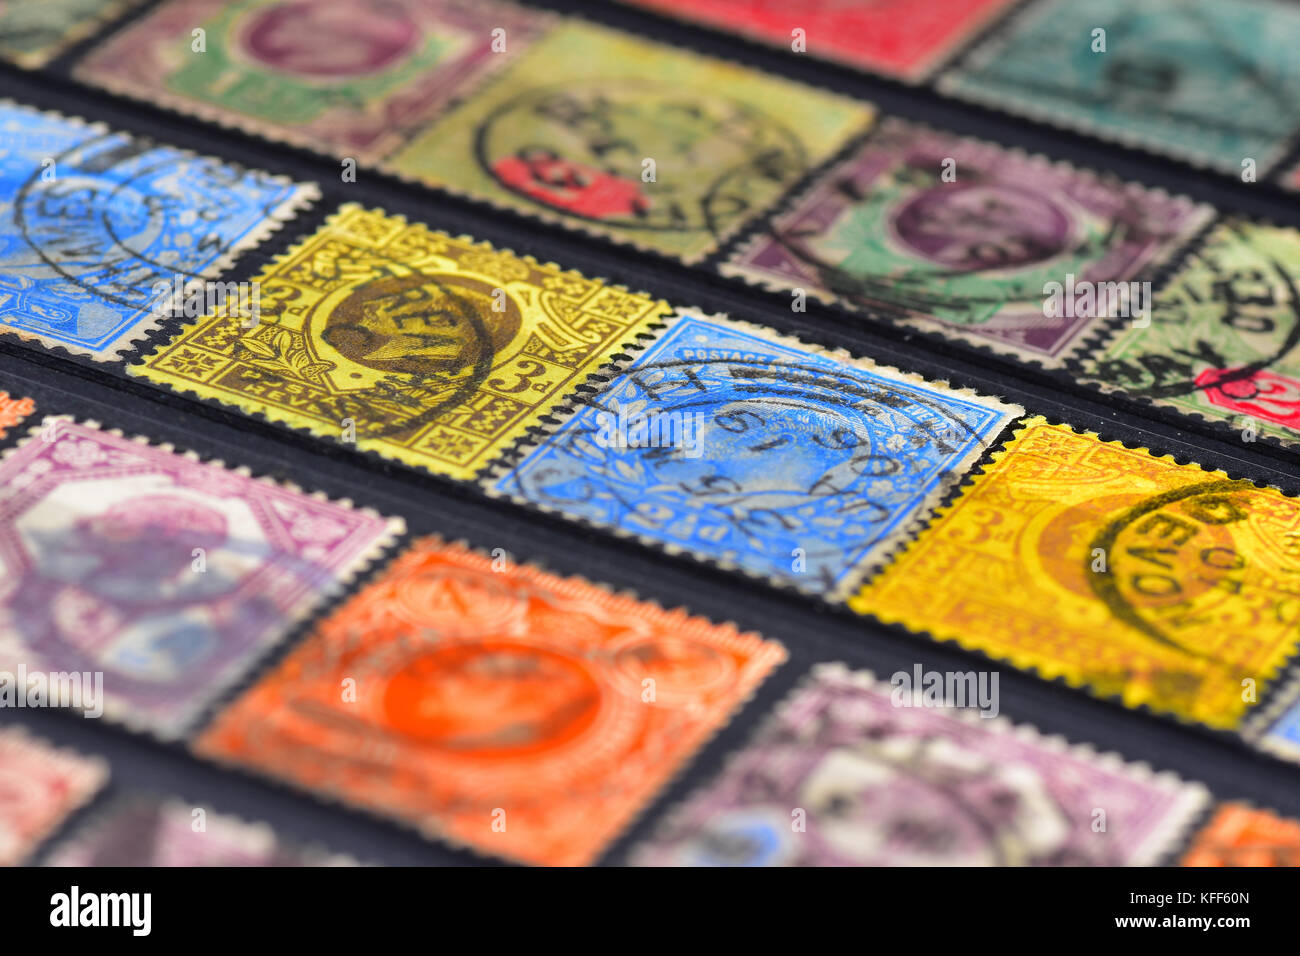 Old British empire stamp collection - George V - Stock Image